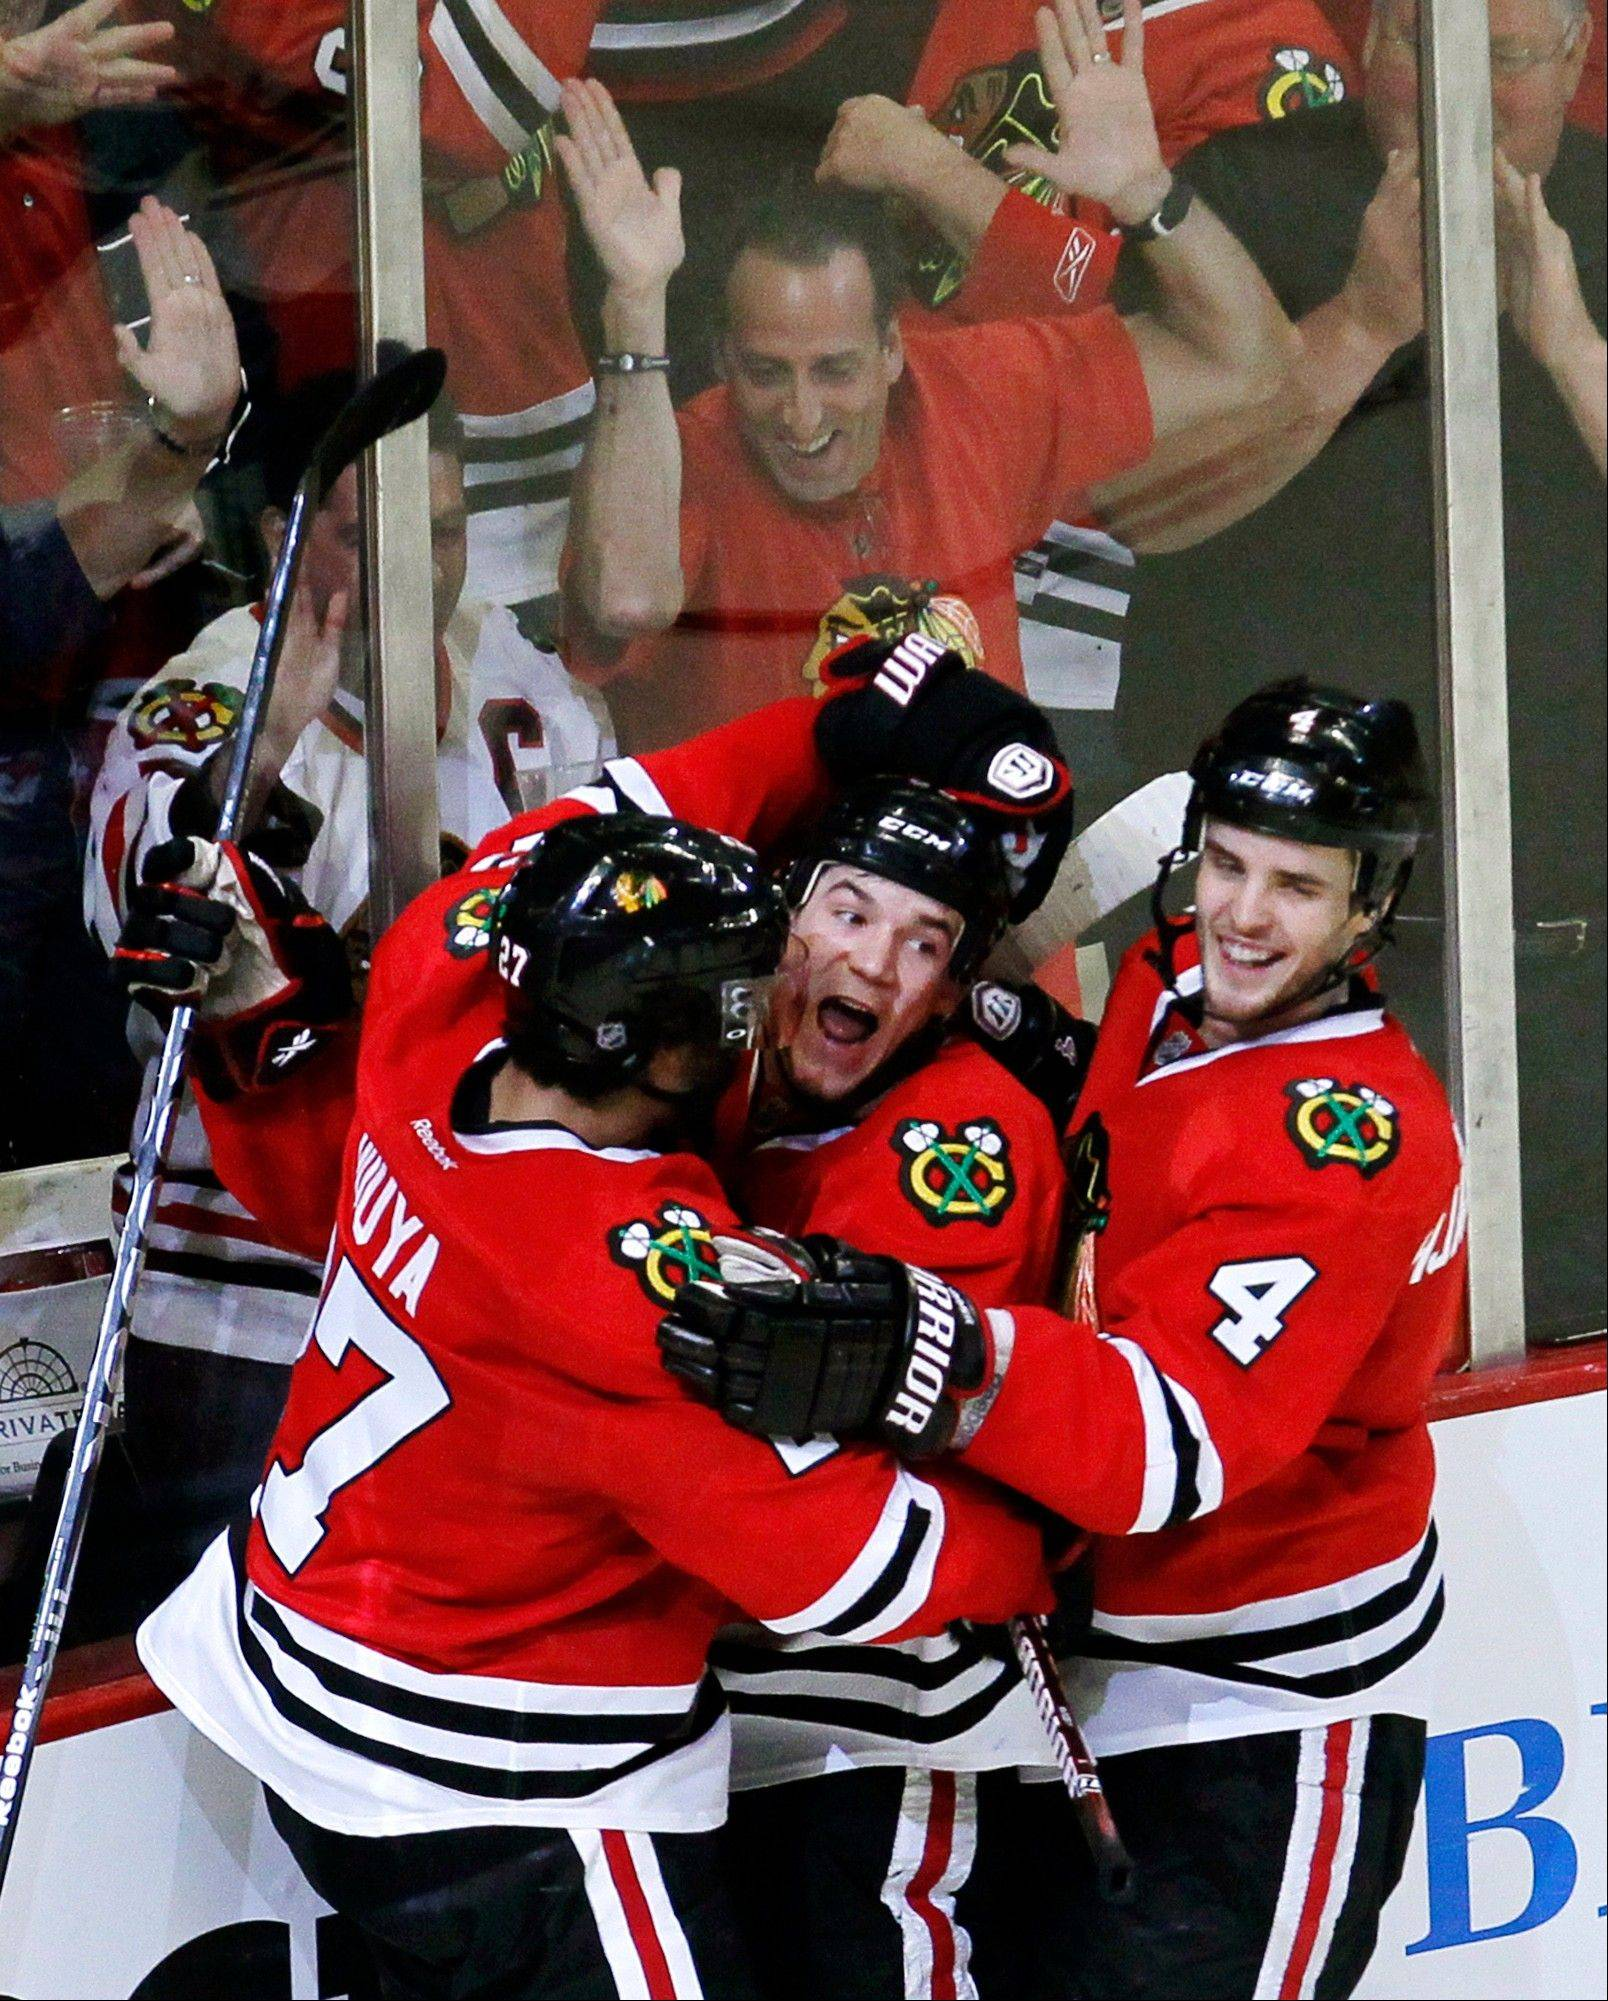 Defenseman Johnny Oduya (27) and defenseman Niklas Hjalmarsson (4) celebrate with Andrew Shaw after Shaw's game-winning overtime goal against the Vancouver Canucks on March 21.